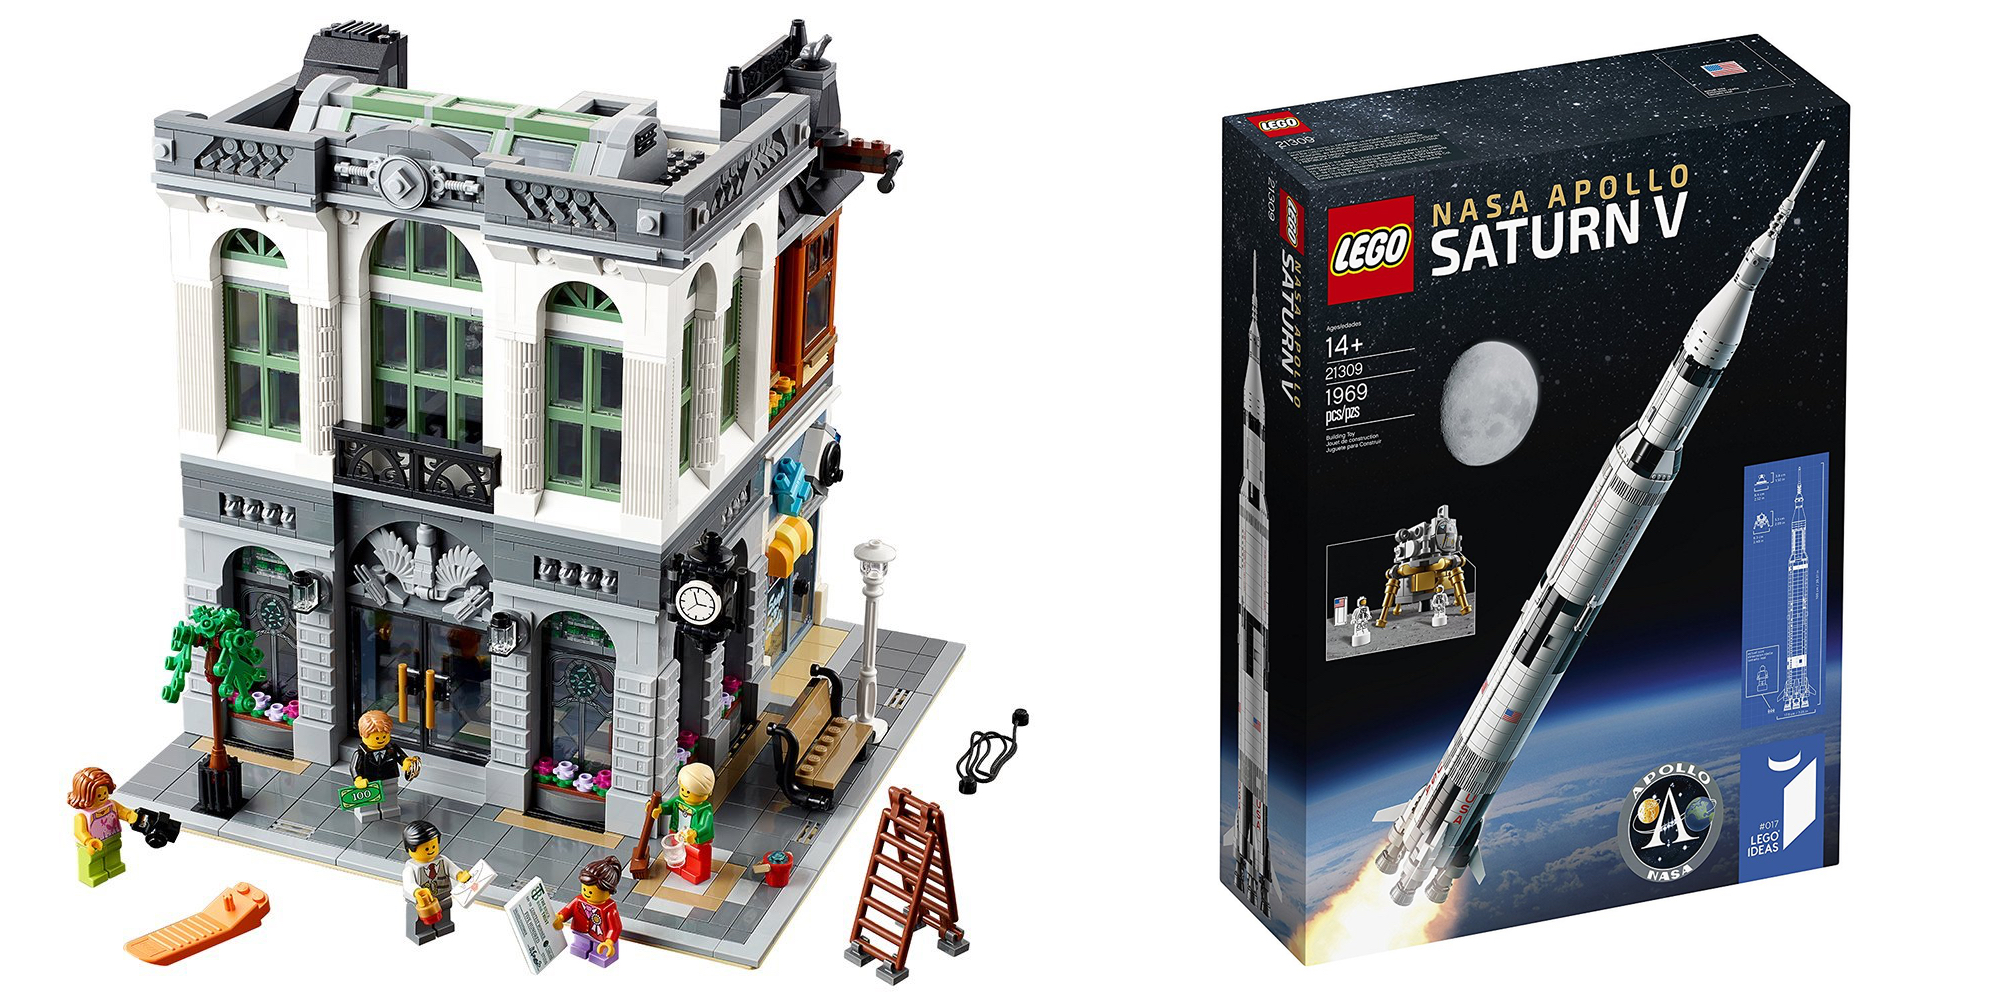 Assemble Your Next Lego Set At Up To 25 Off Brick Bank 146 Apollo Saturn V To5toys